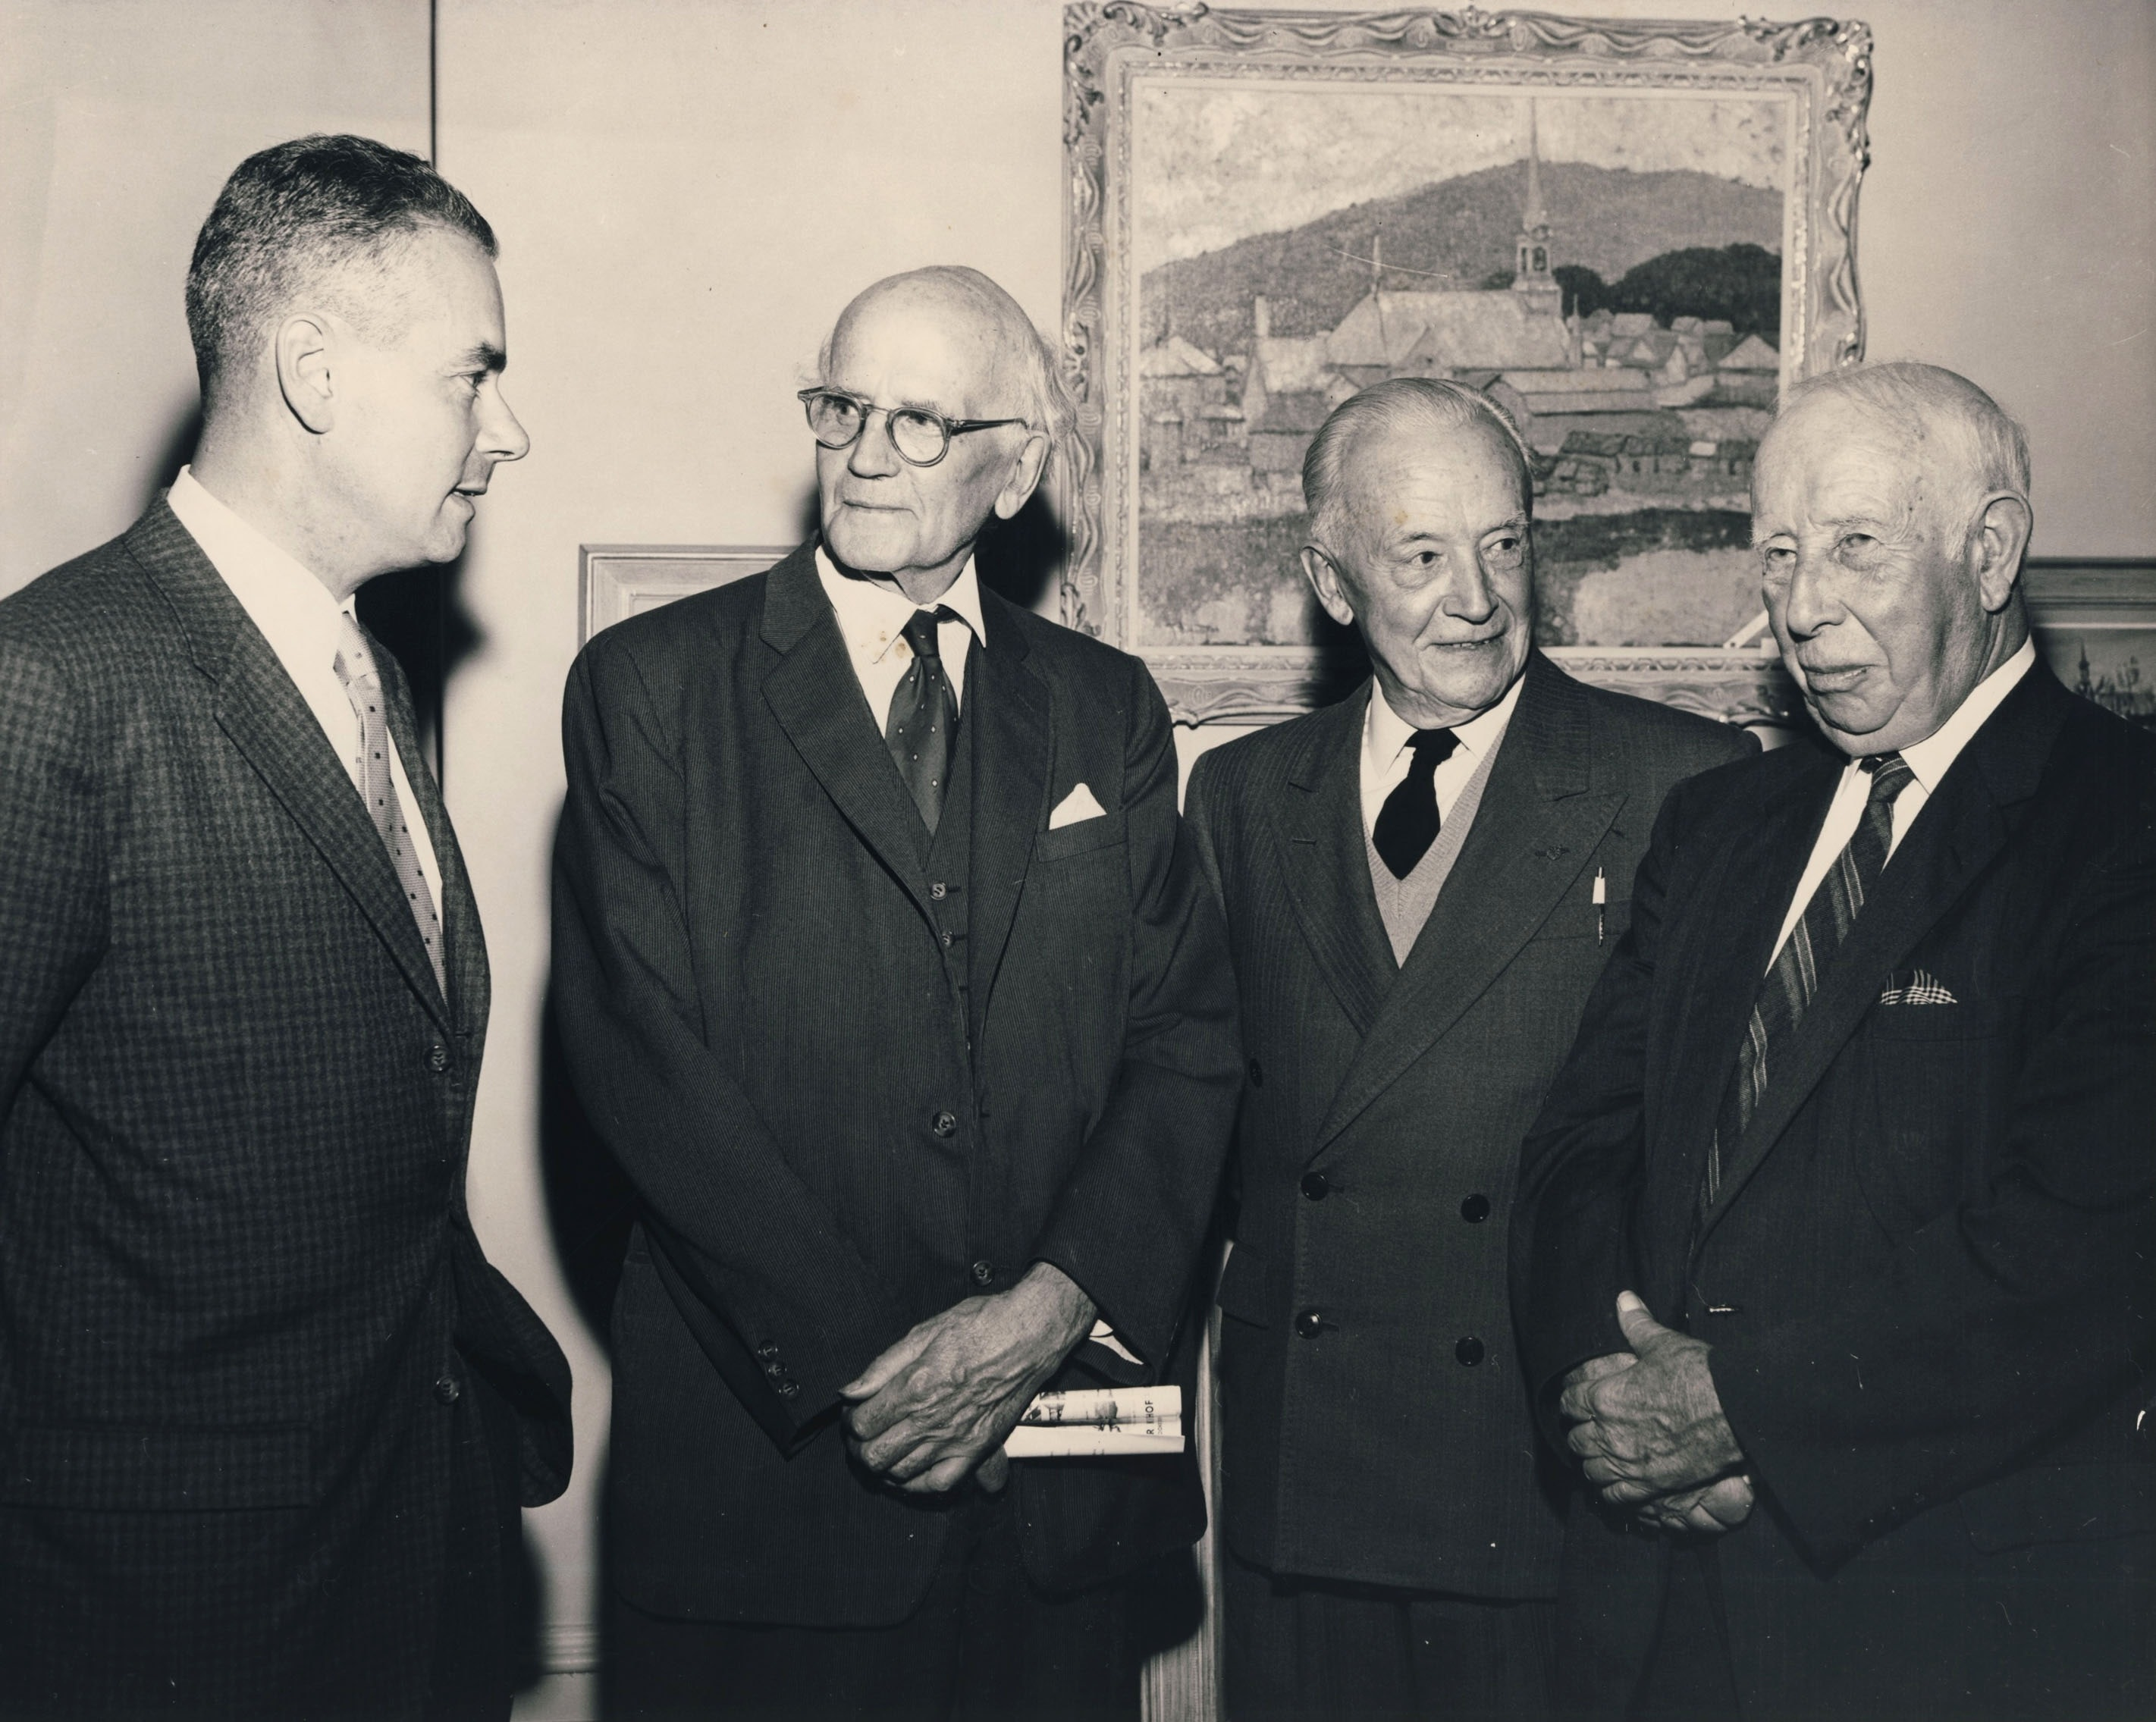 Walter Klinkhoff, Arthur Lismer, Edwin Holgate, and A.Y. Jackson at the Randolph Hewton Retrospective at Walter Klinkhoff Gallery in October 1962